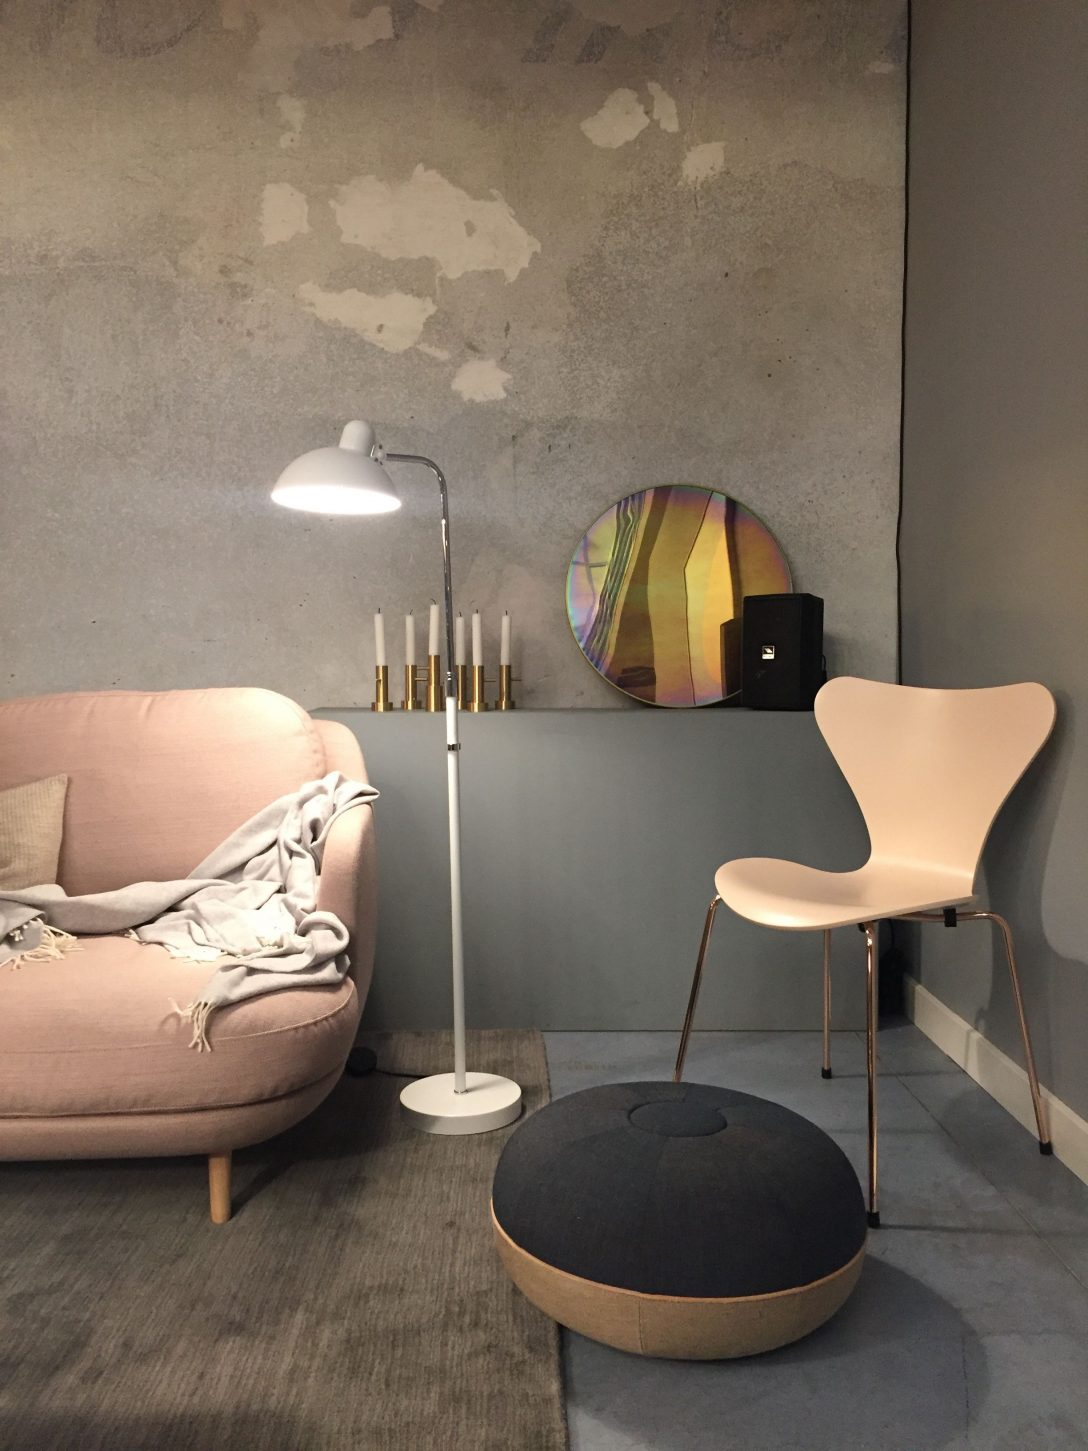 Large Size of Ikea Wohnzimmer Lampen Wohnzimmer Lampen Toom Baumarkt Designer Wohnzimmer Lampen Wohnzimmer Lampen Selber Bauen Wohnzimmer Wohnzimmer Lampen